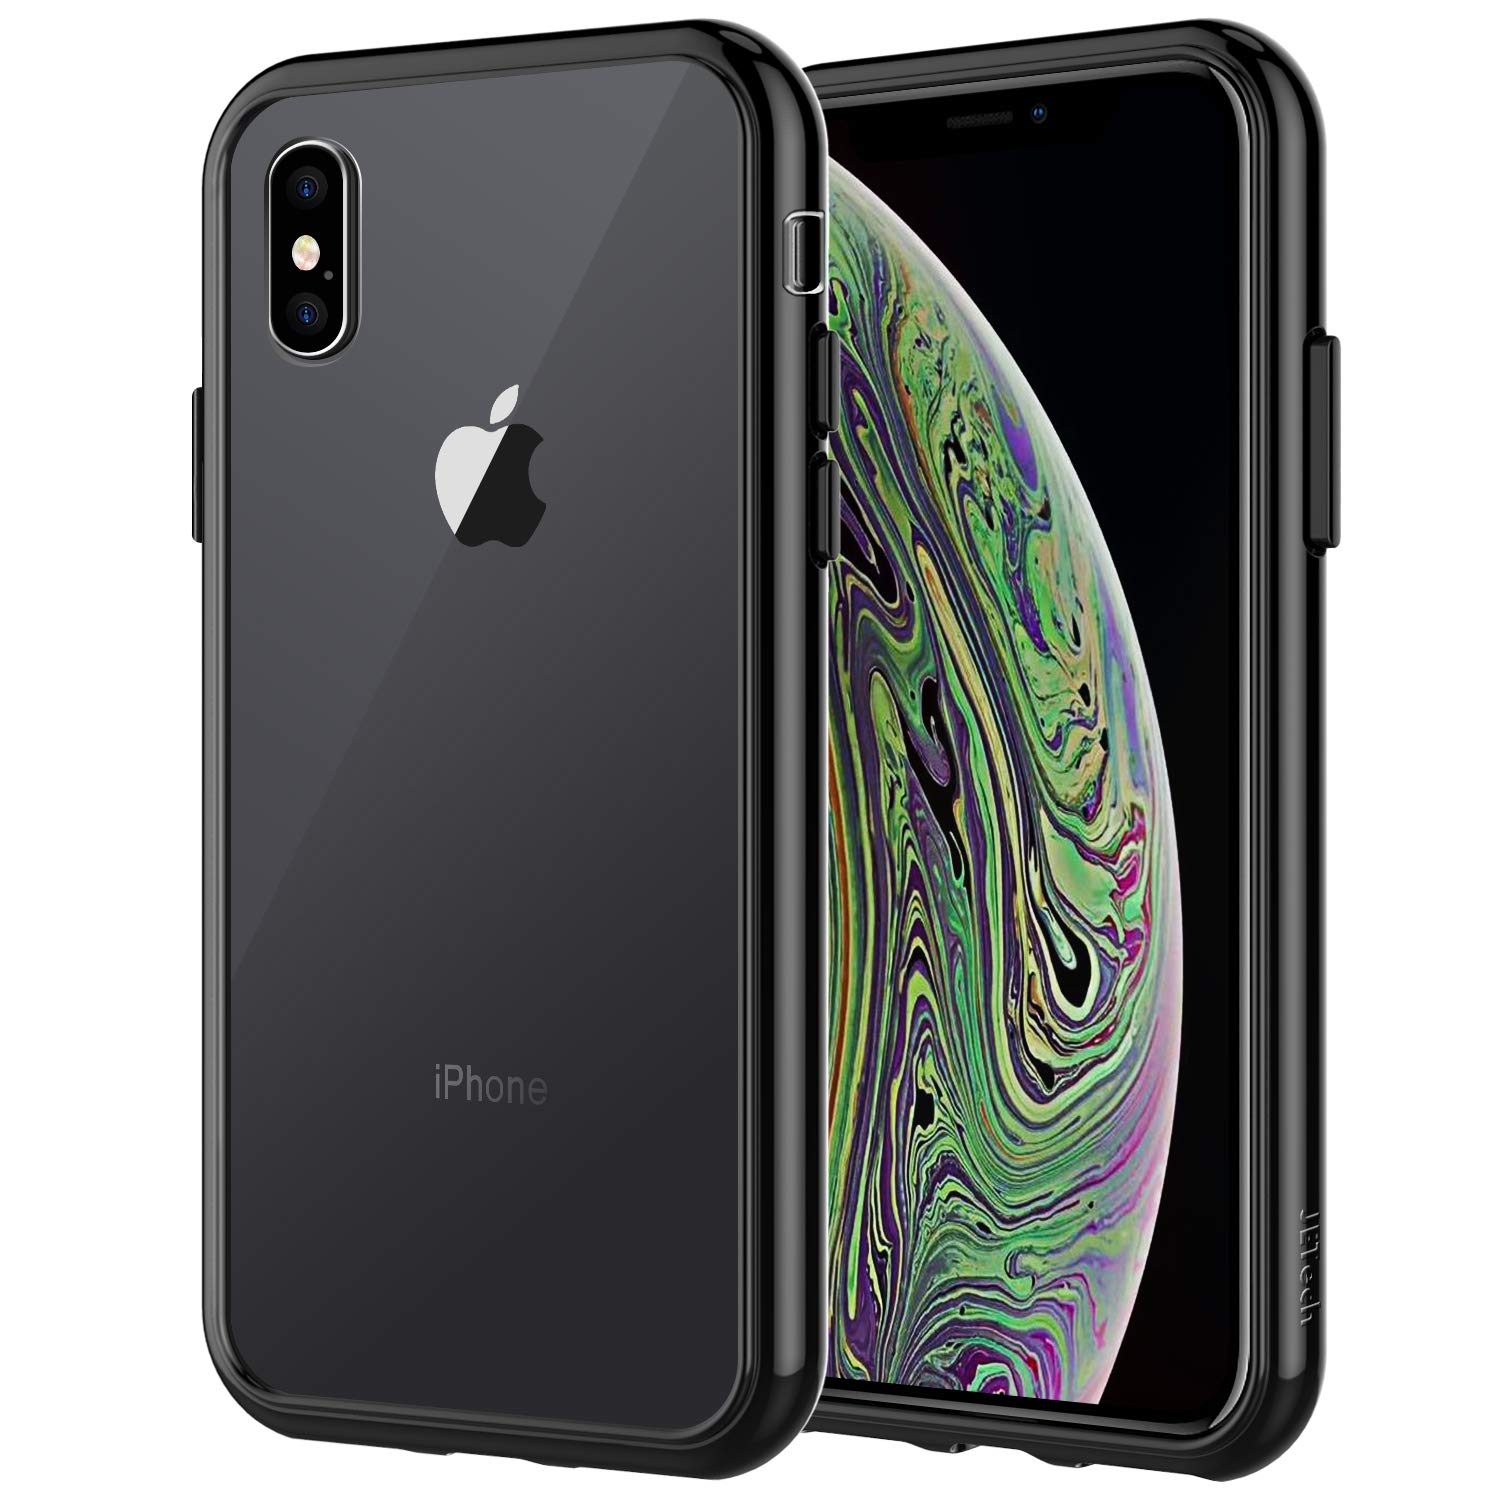 factory authentic cd8d0 18333 JETech Case for Apple iPhone Xs and iPhone X, Shock-Absorption Bumper  Cover, Black